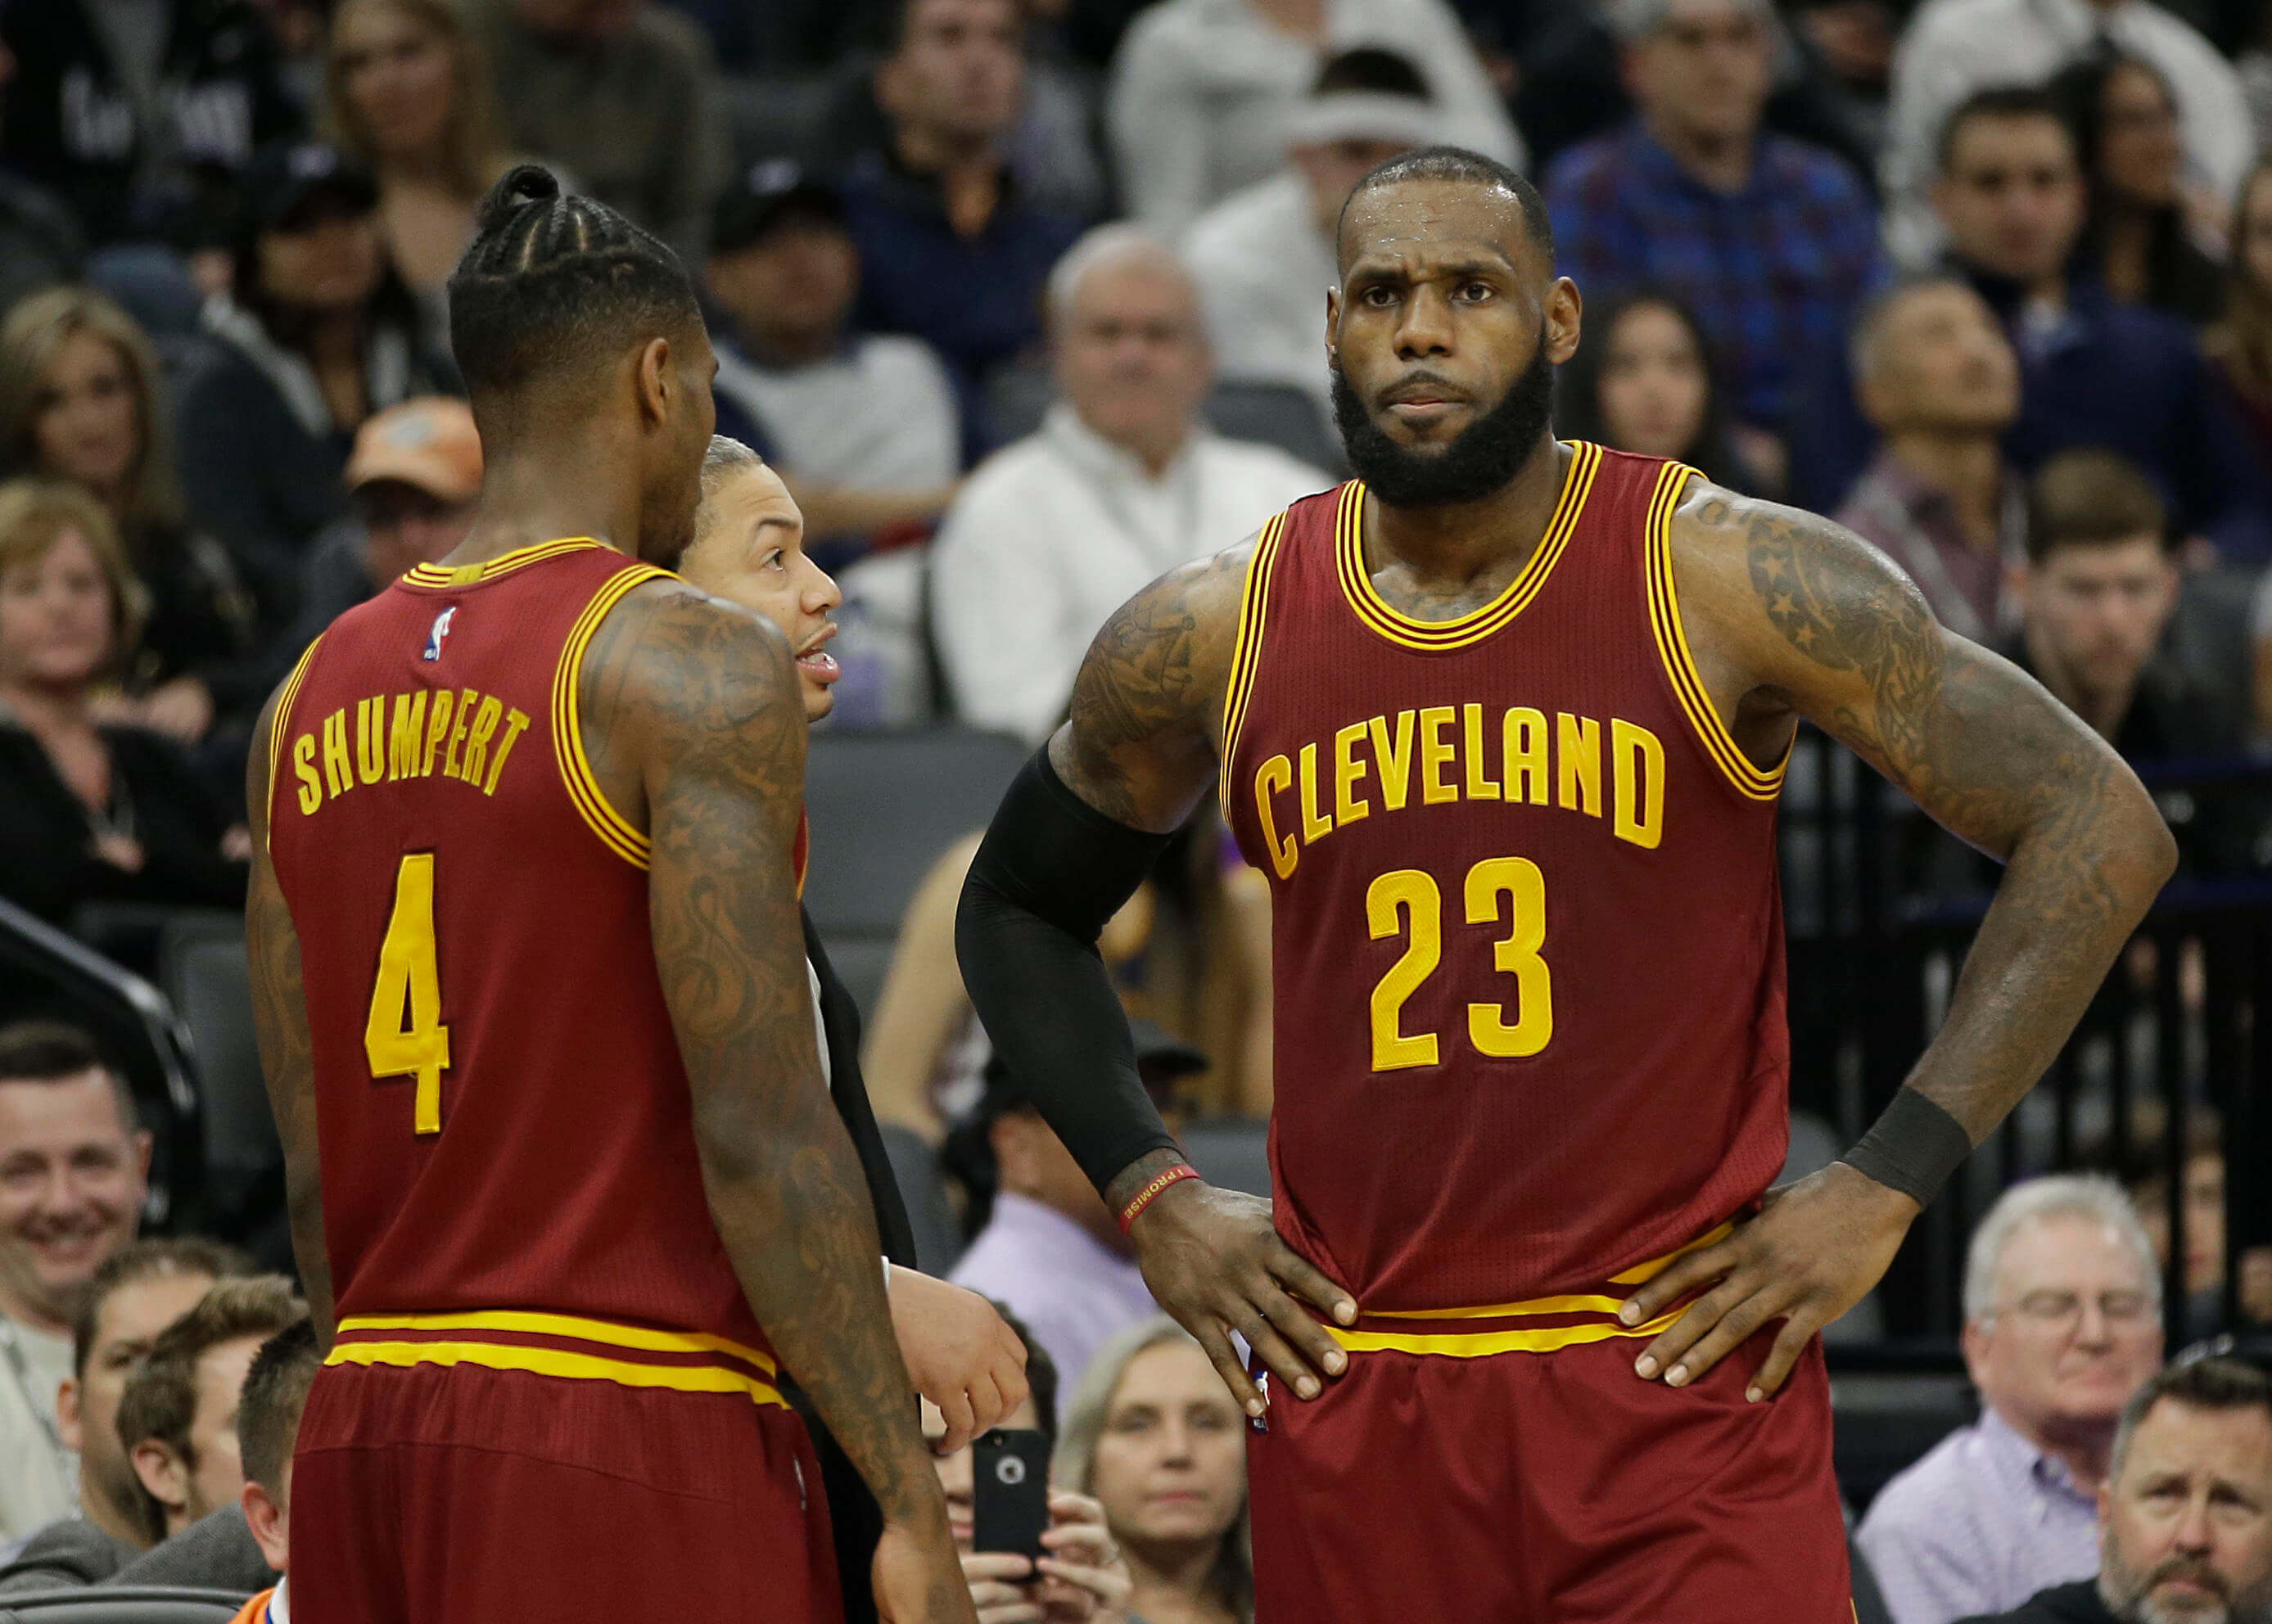 Cavaliers Lebron and Shumpert